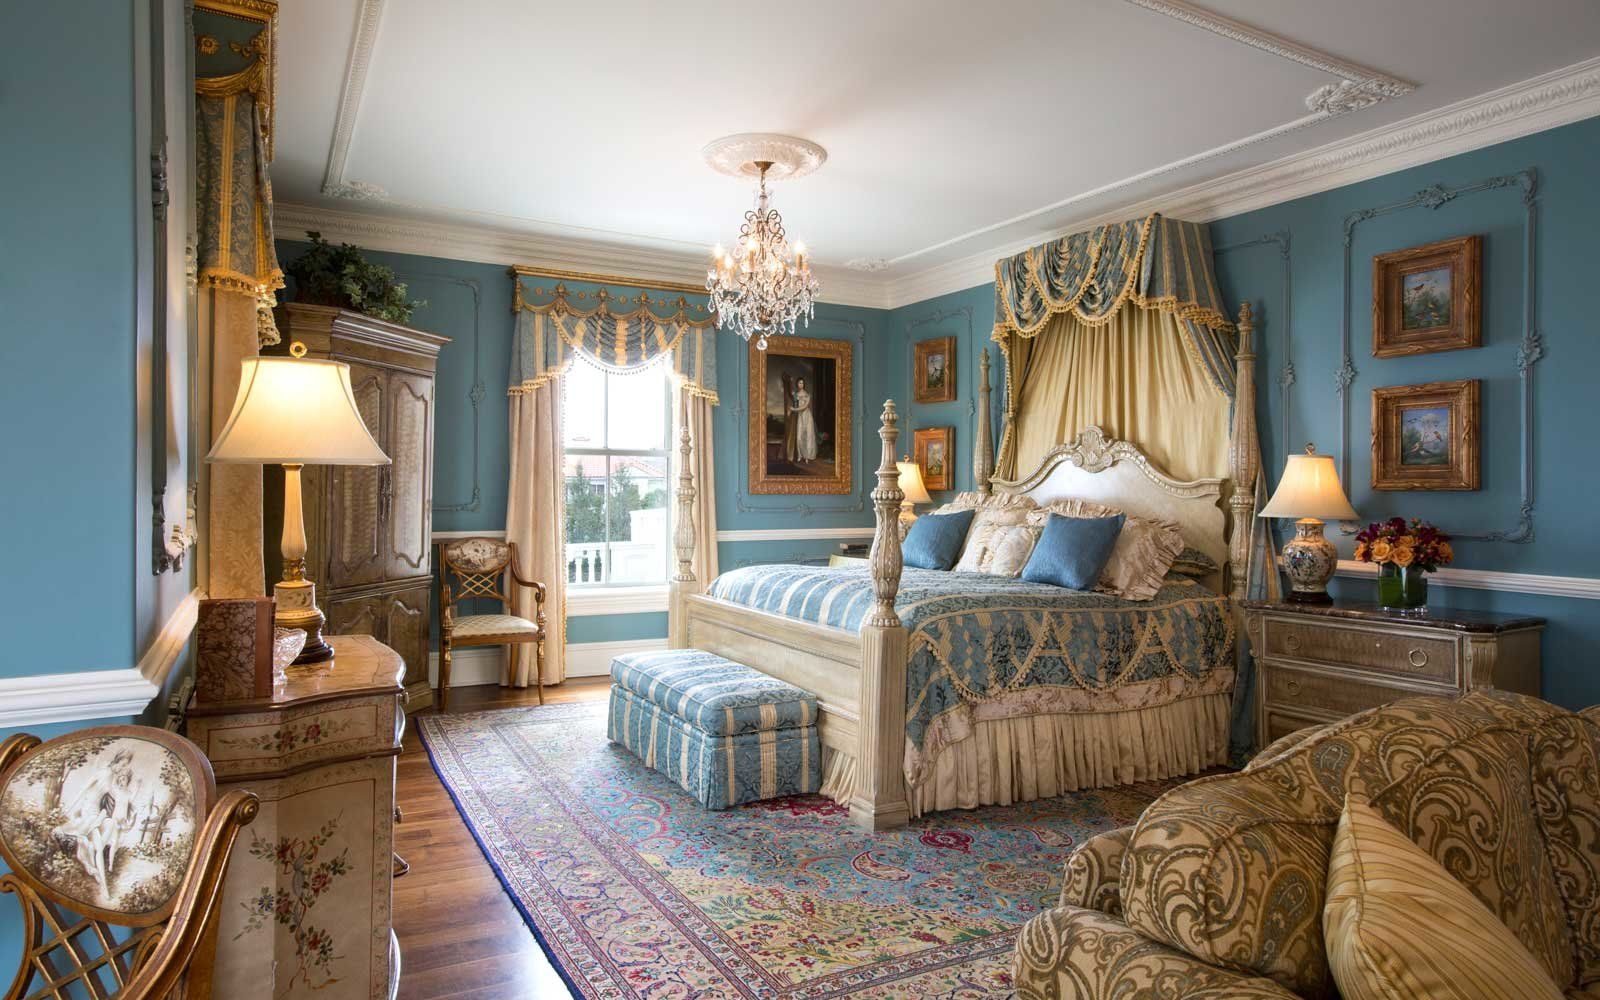 Chanler at cliff walk newport rhode island from mountain retreats to world class beach getaways these are the top places stay as voted by   also continental   resort hotels vacations pinterest rh